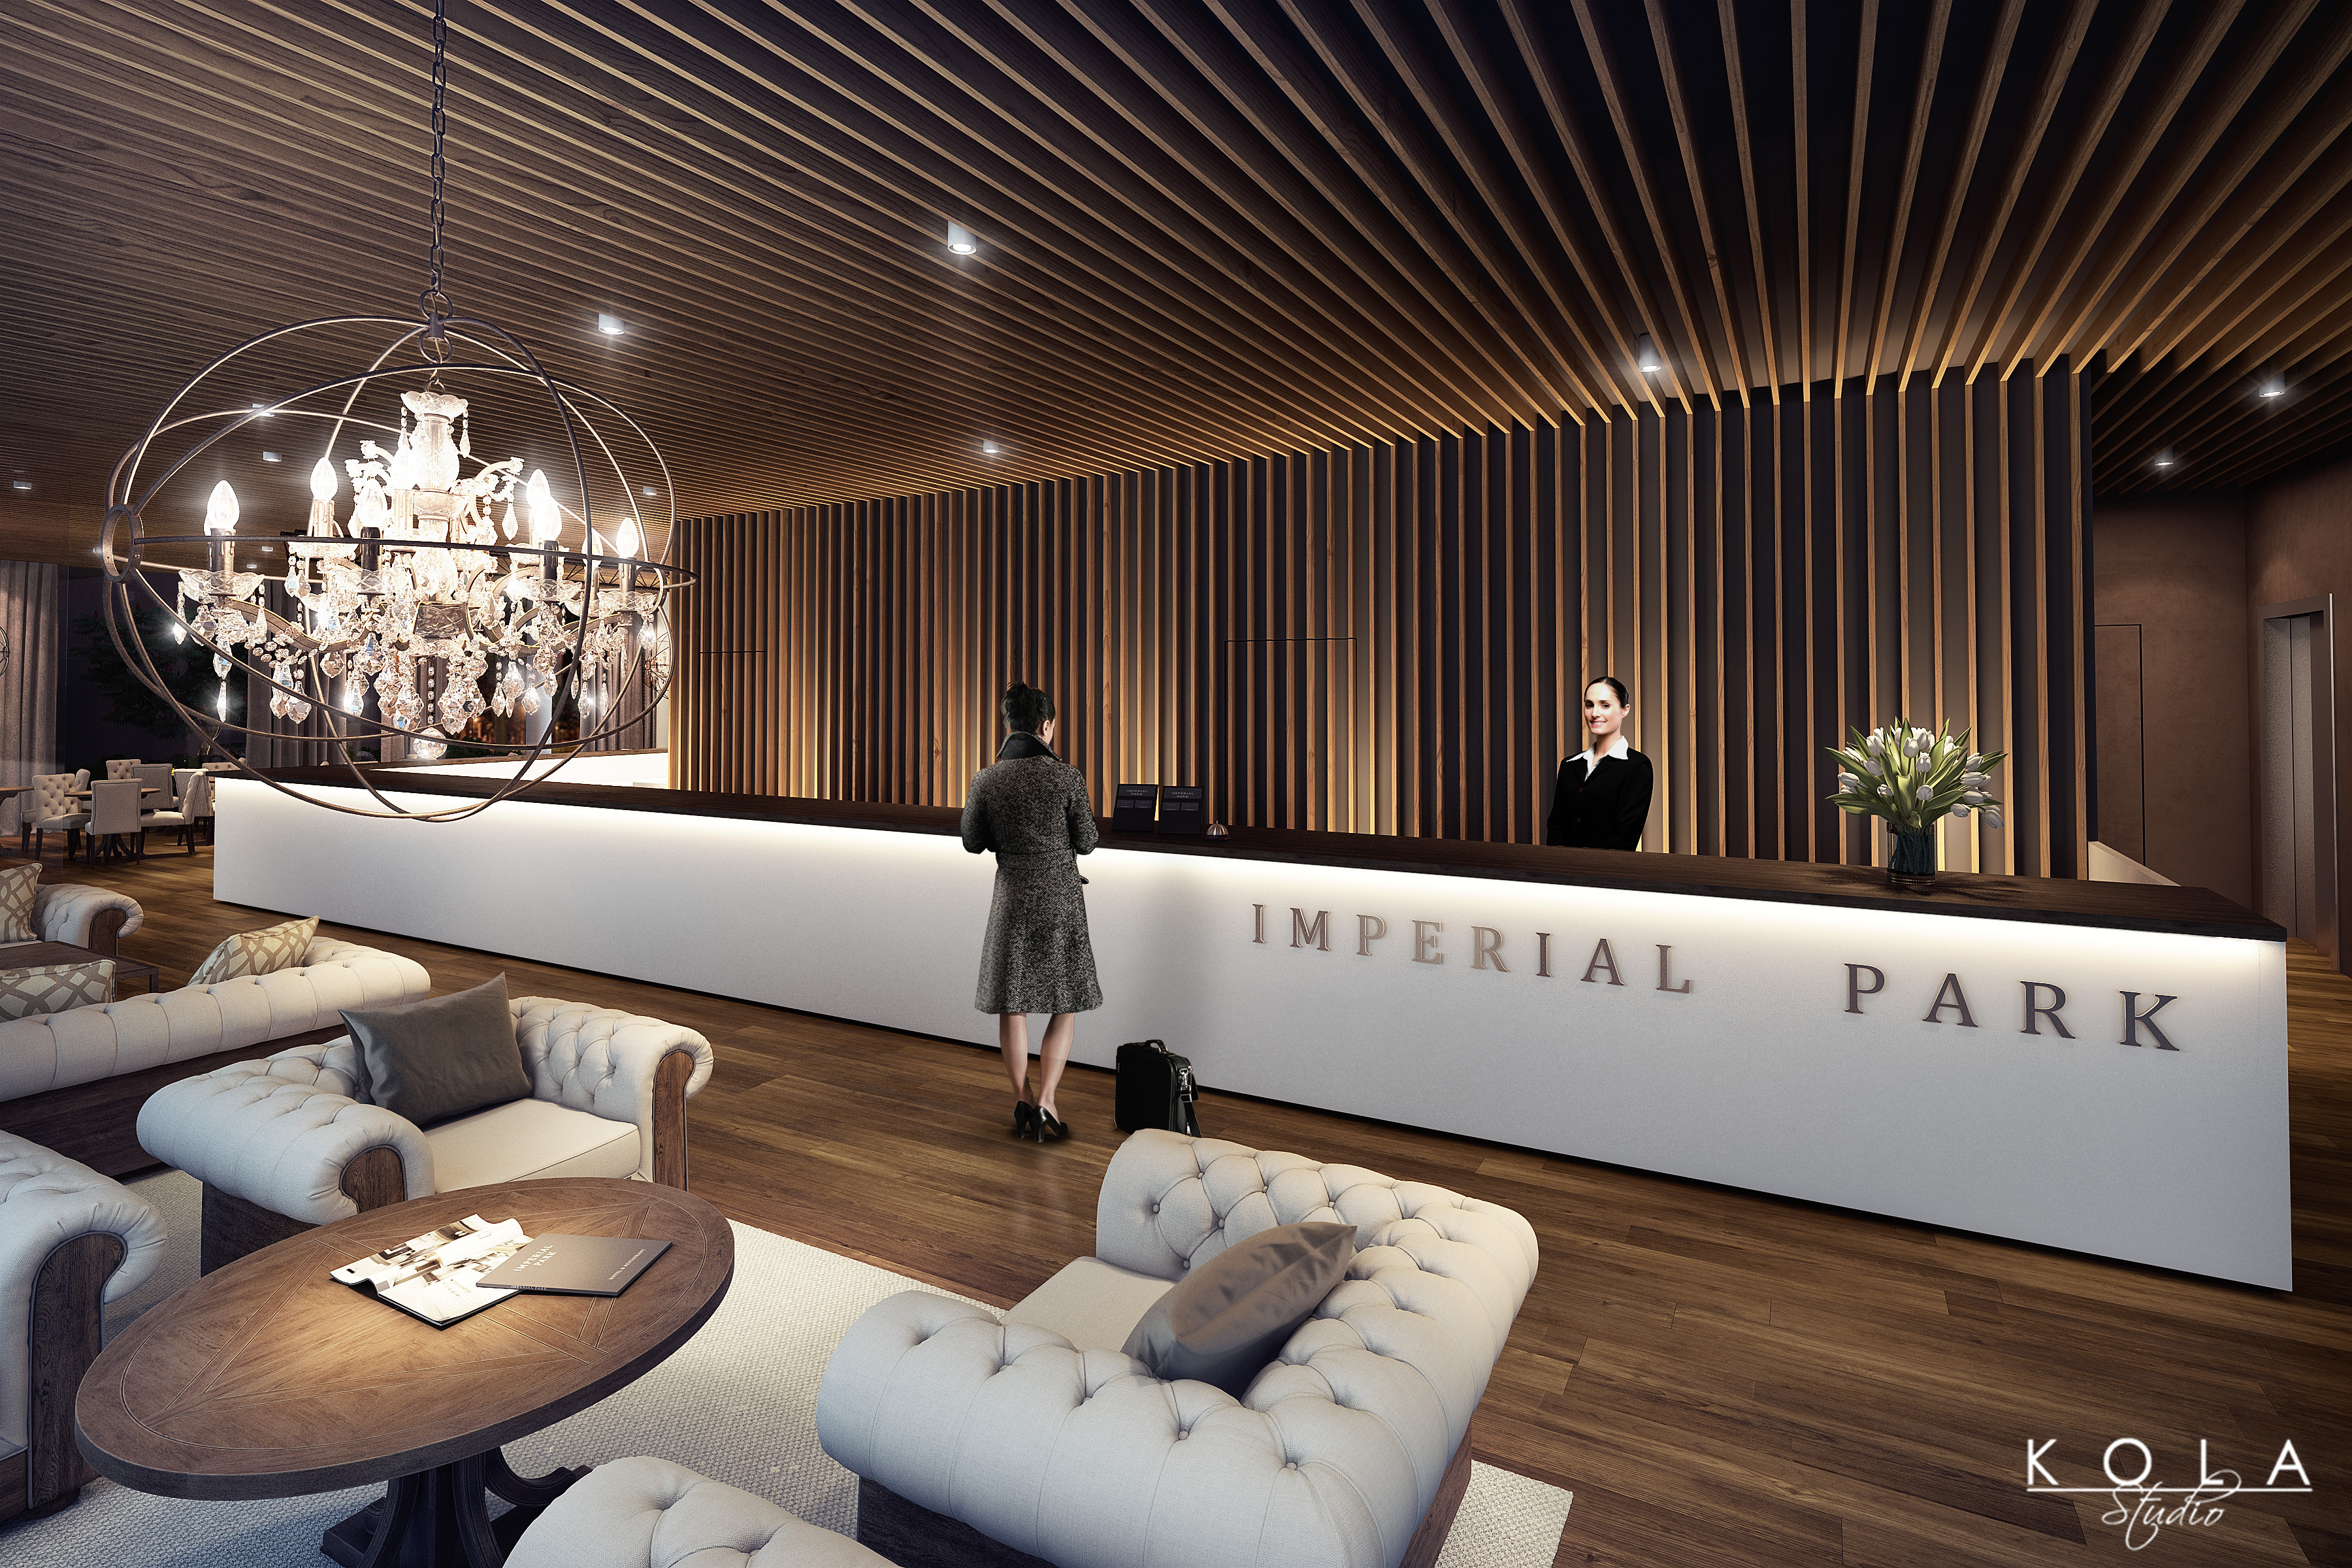 Imperial Park Hotel - interiors 3D model - Hotel reception with lobby area